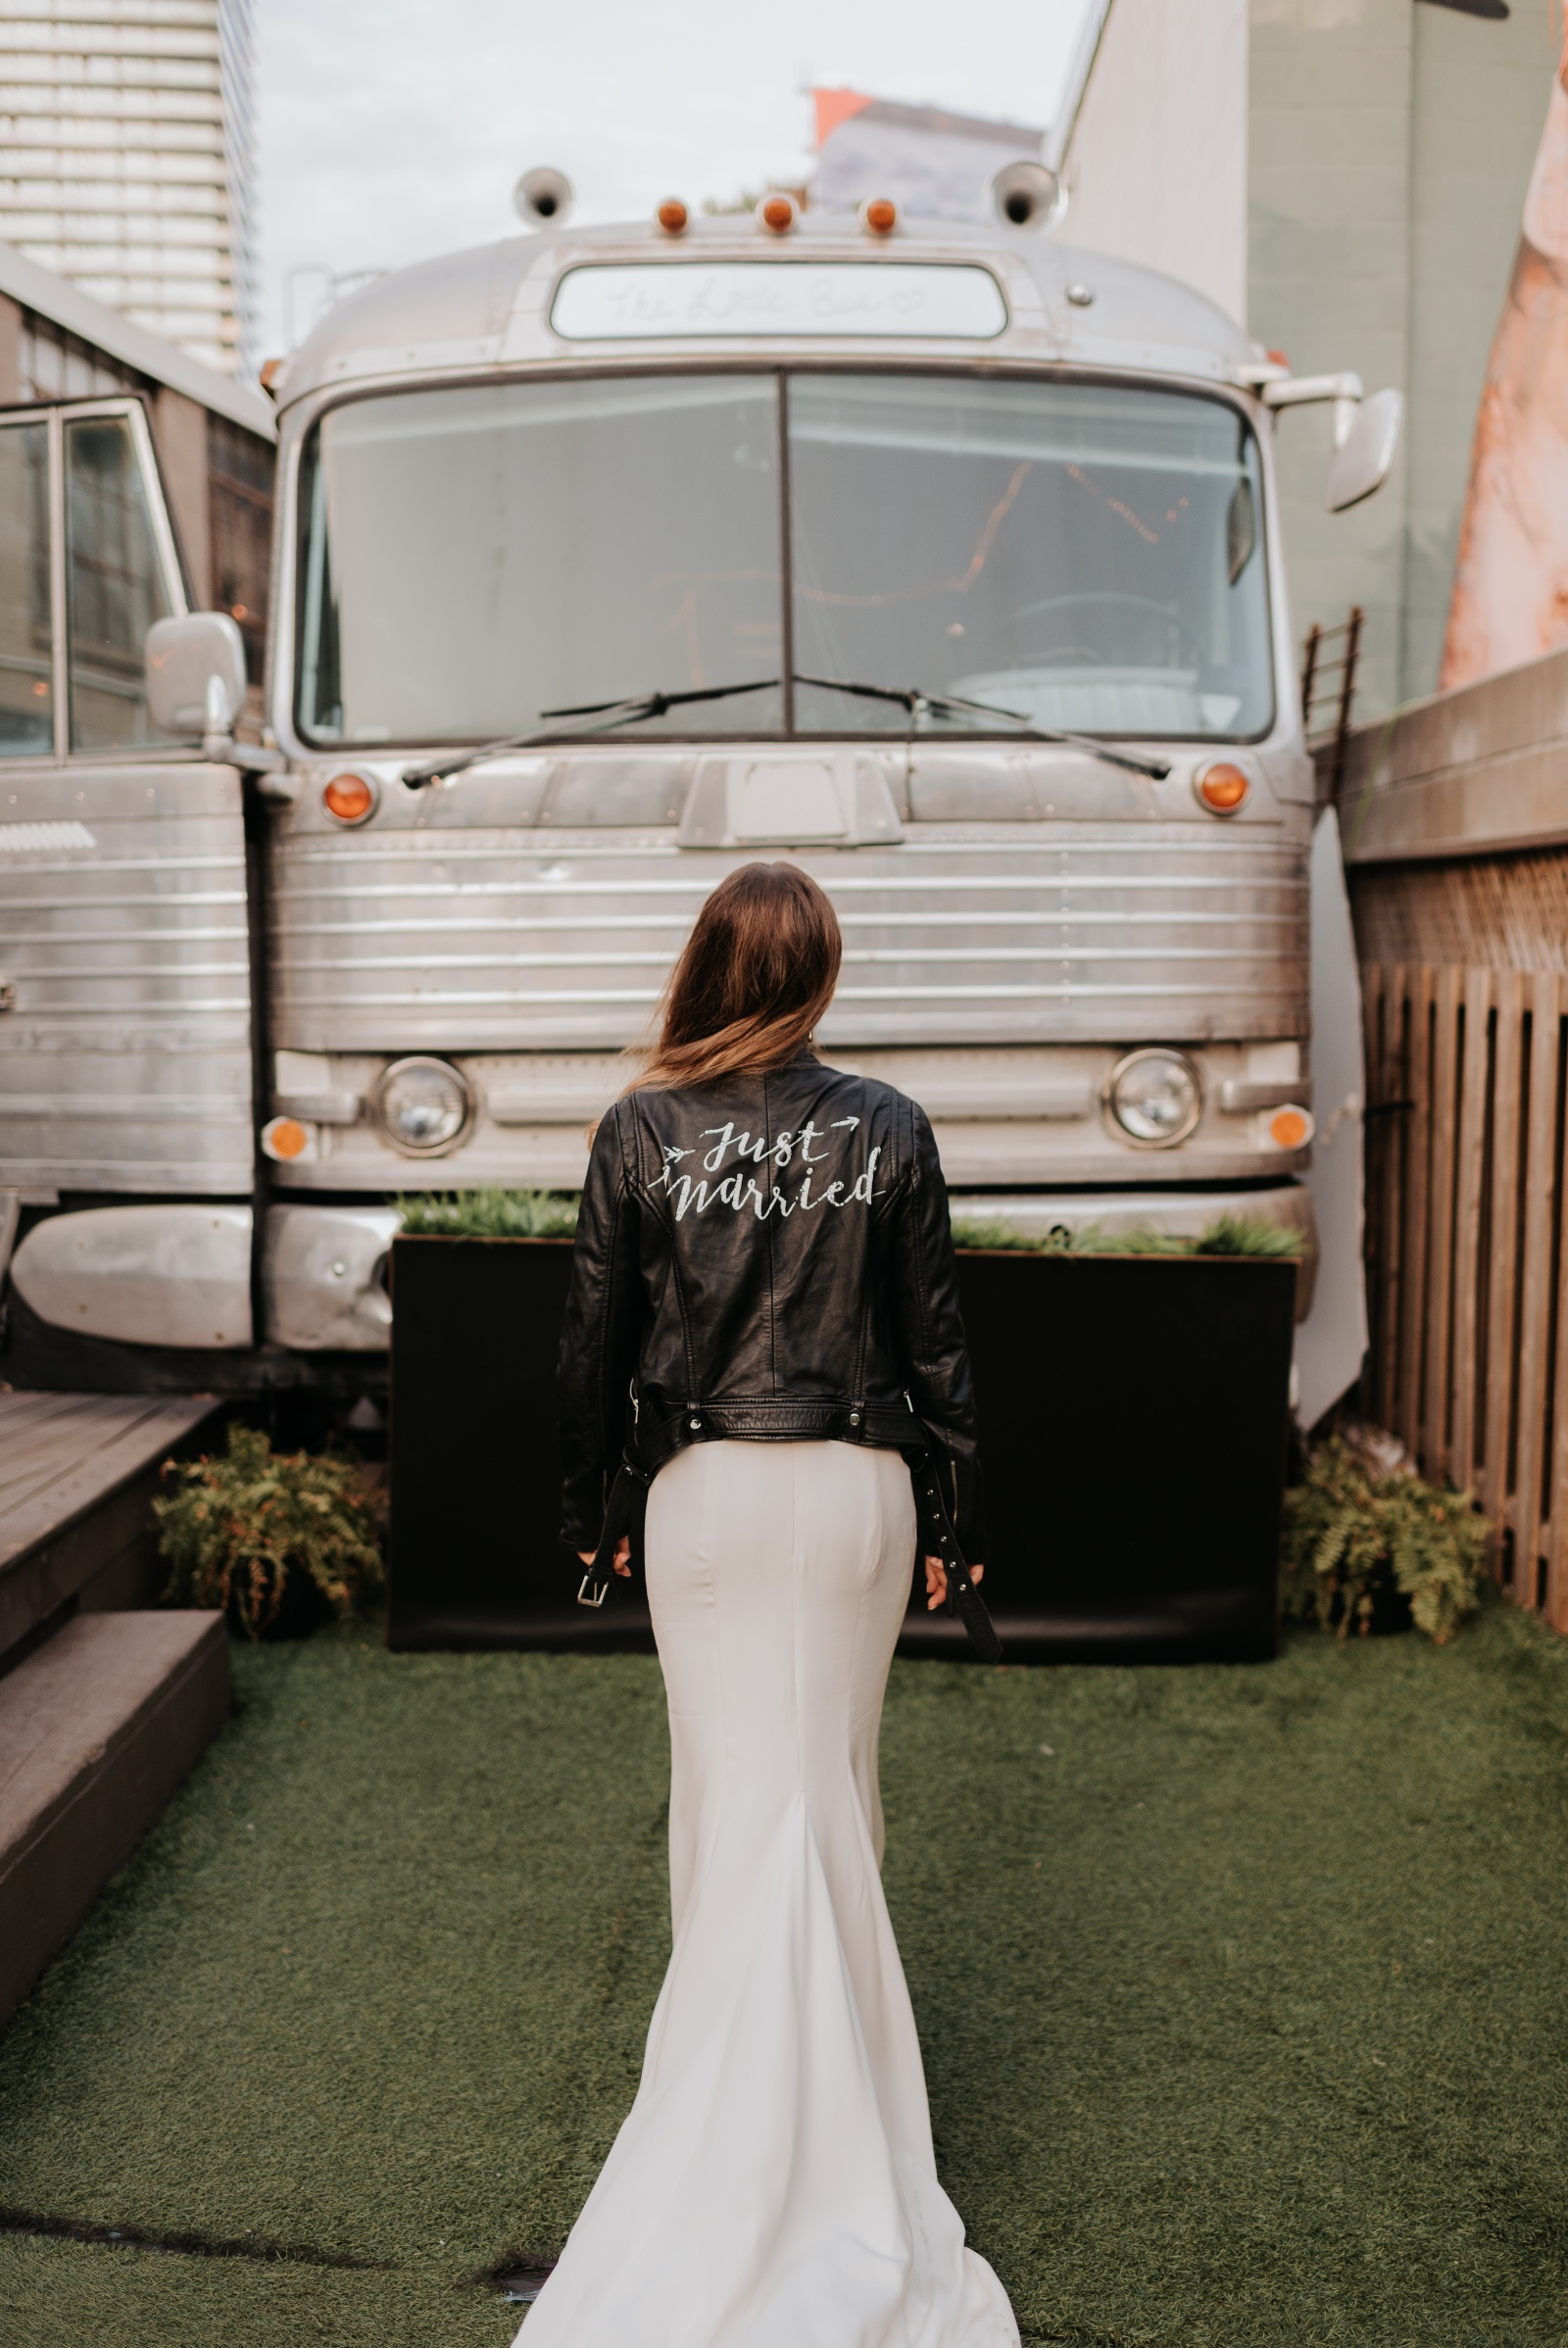 Leather just married jacket bride